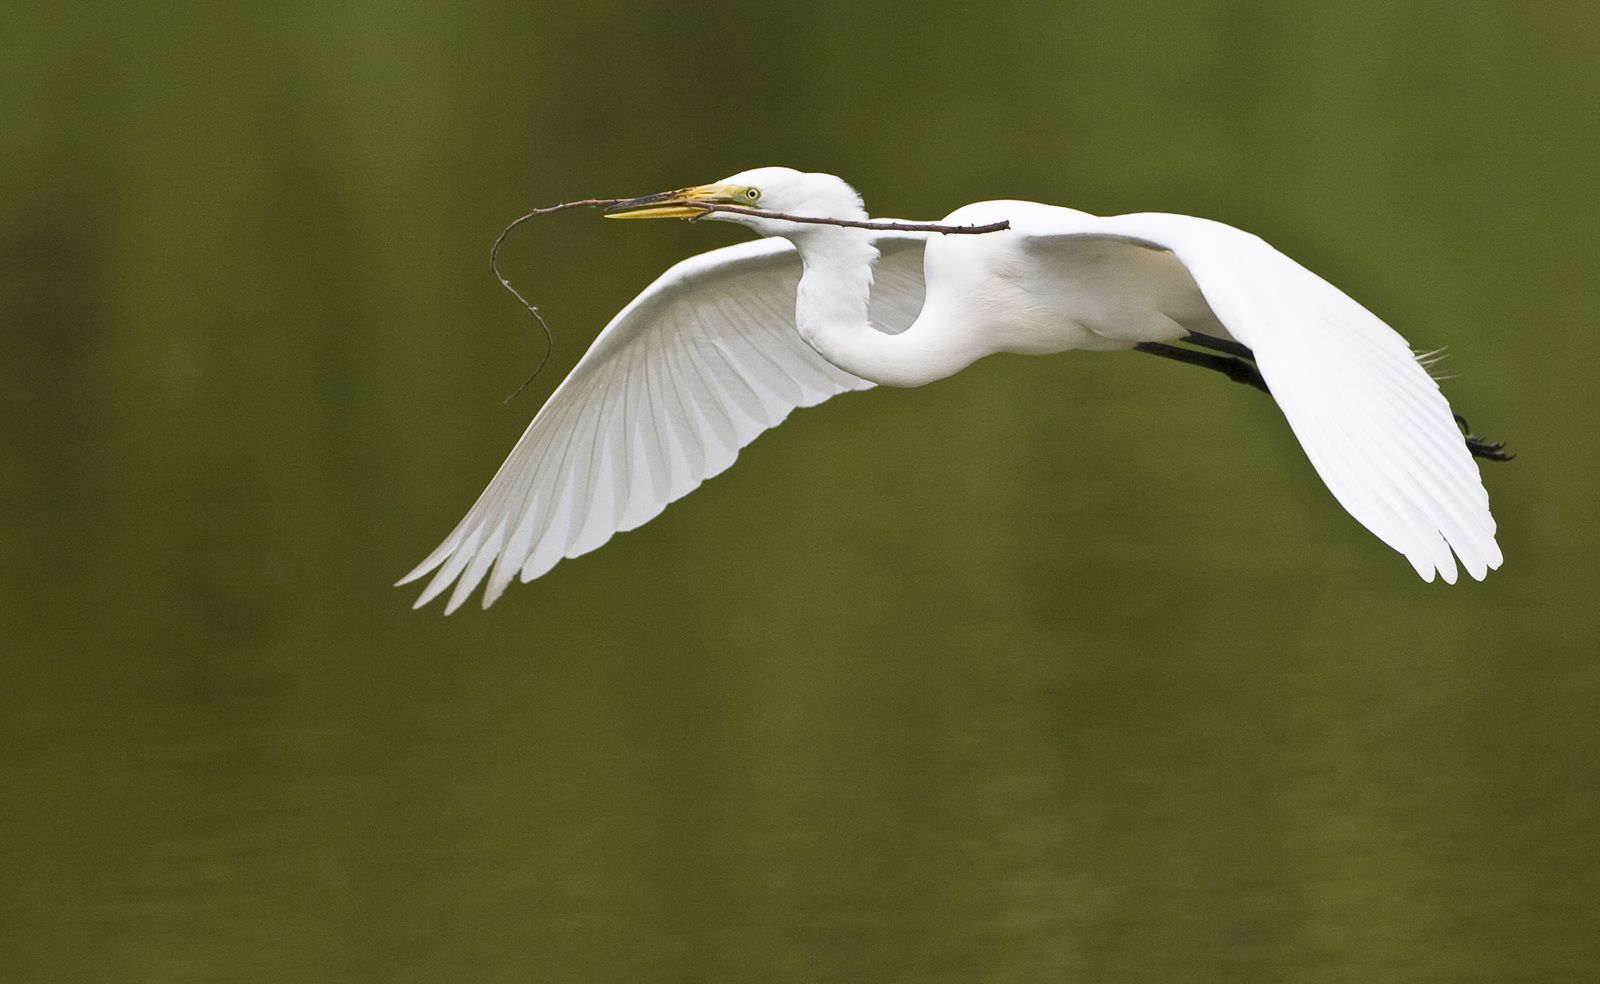 A great egret is flying above water with a stick in its bill.